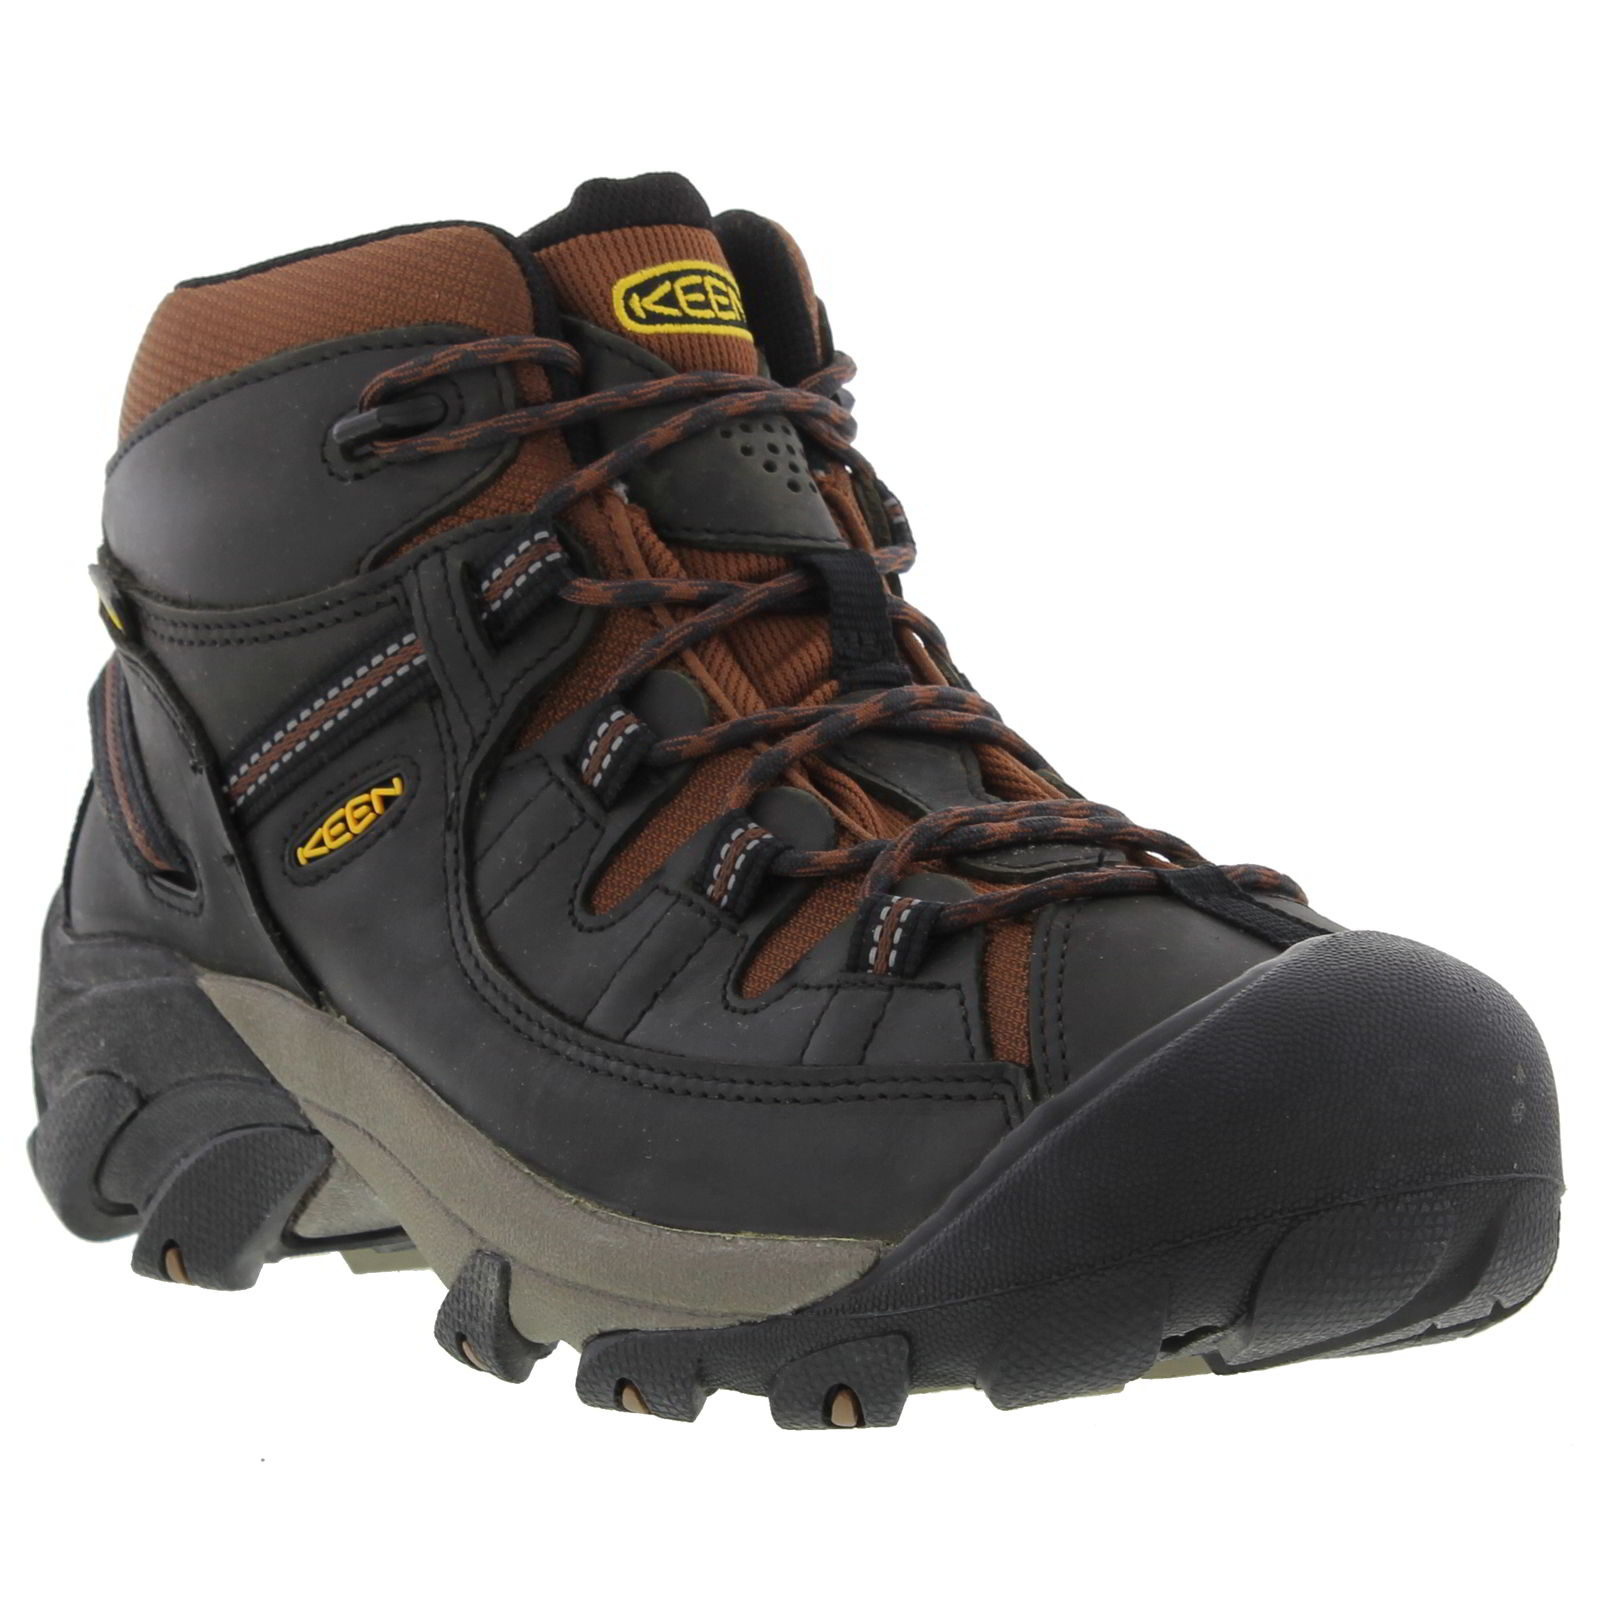 Keen Targhee Ii Mid Wp Mens Leather Waterproof Walking